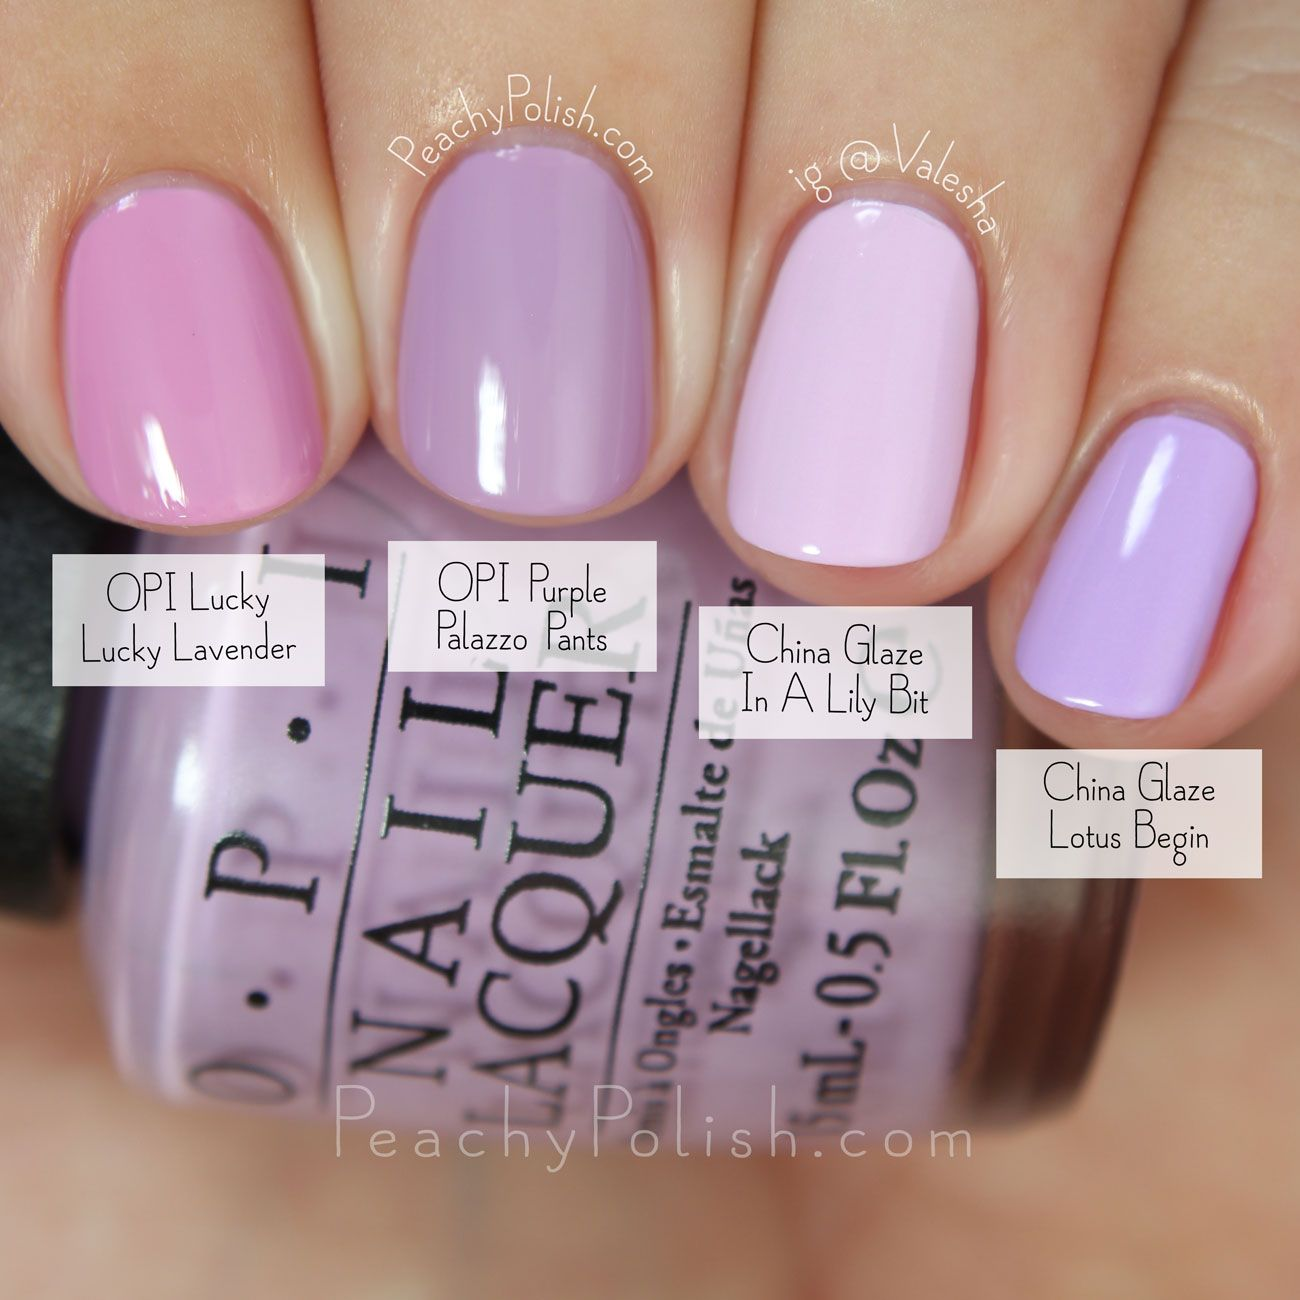 Opi Purple Palazzo Pants Comparison Fall 2017 Venice Collection Peachy Polish